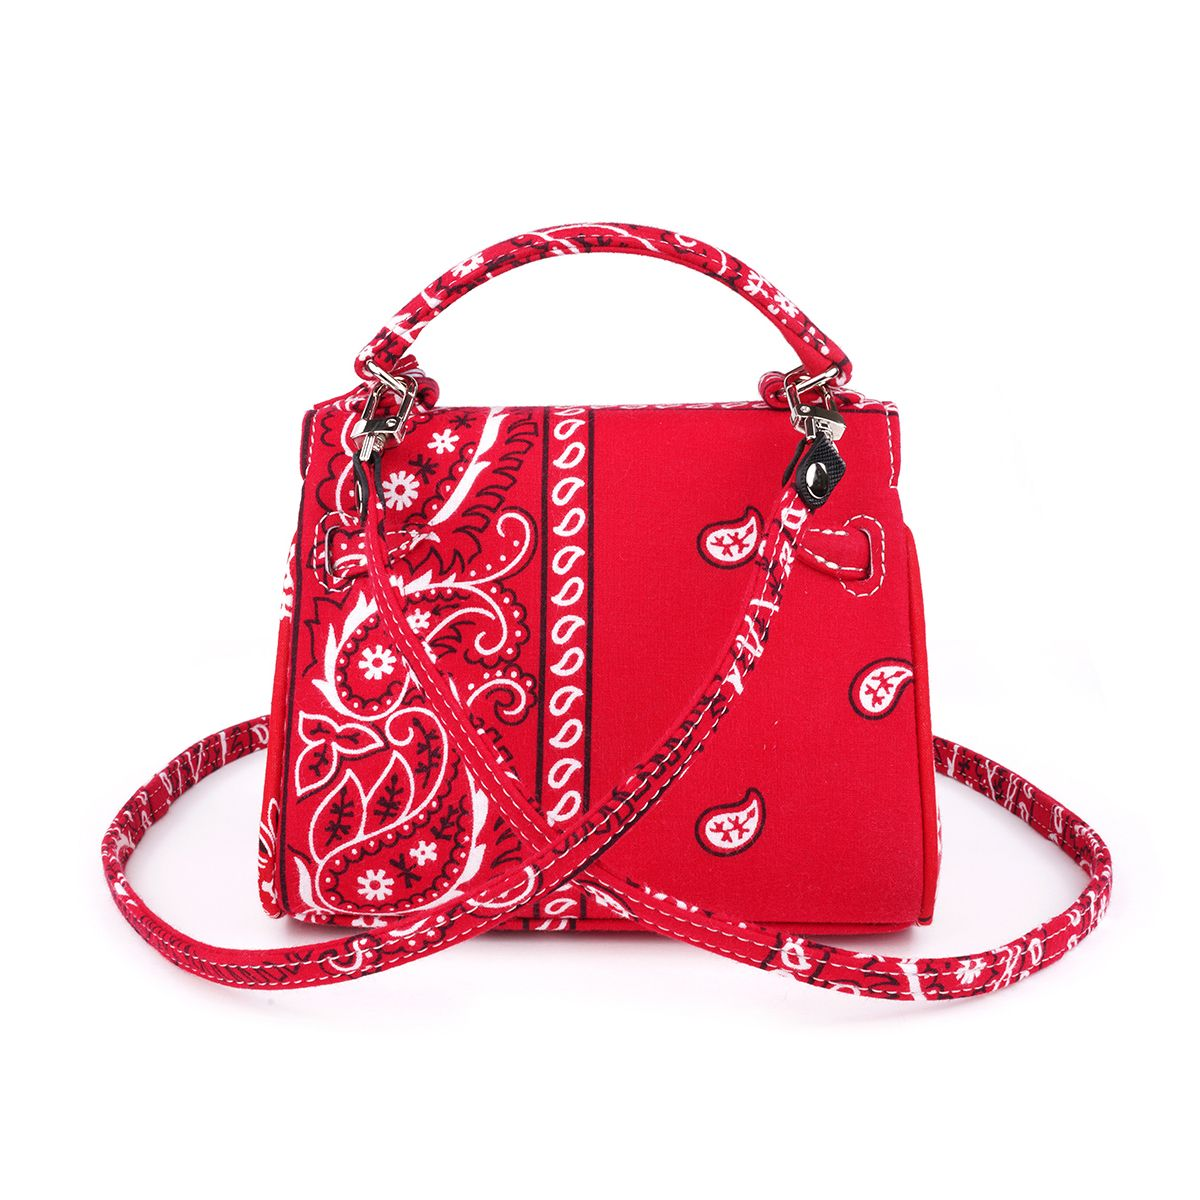 READYMADE BANDANA MONSTER BAG / ASSORT(RED)